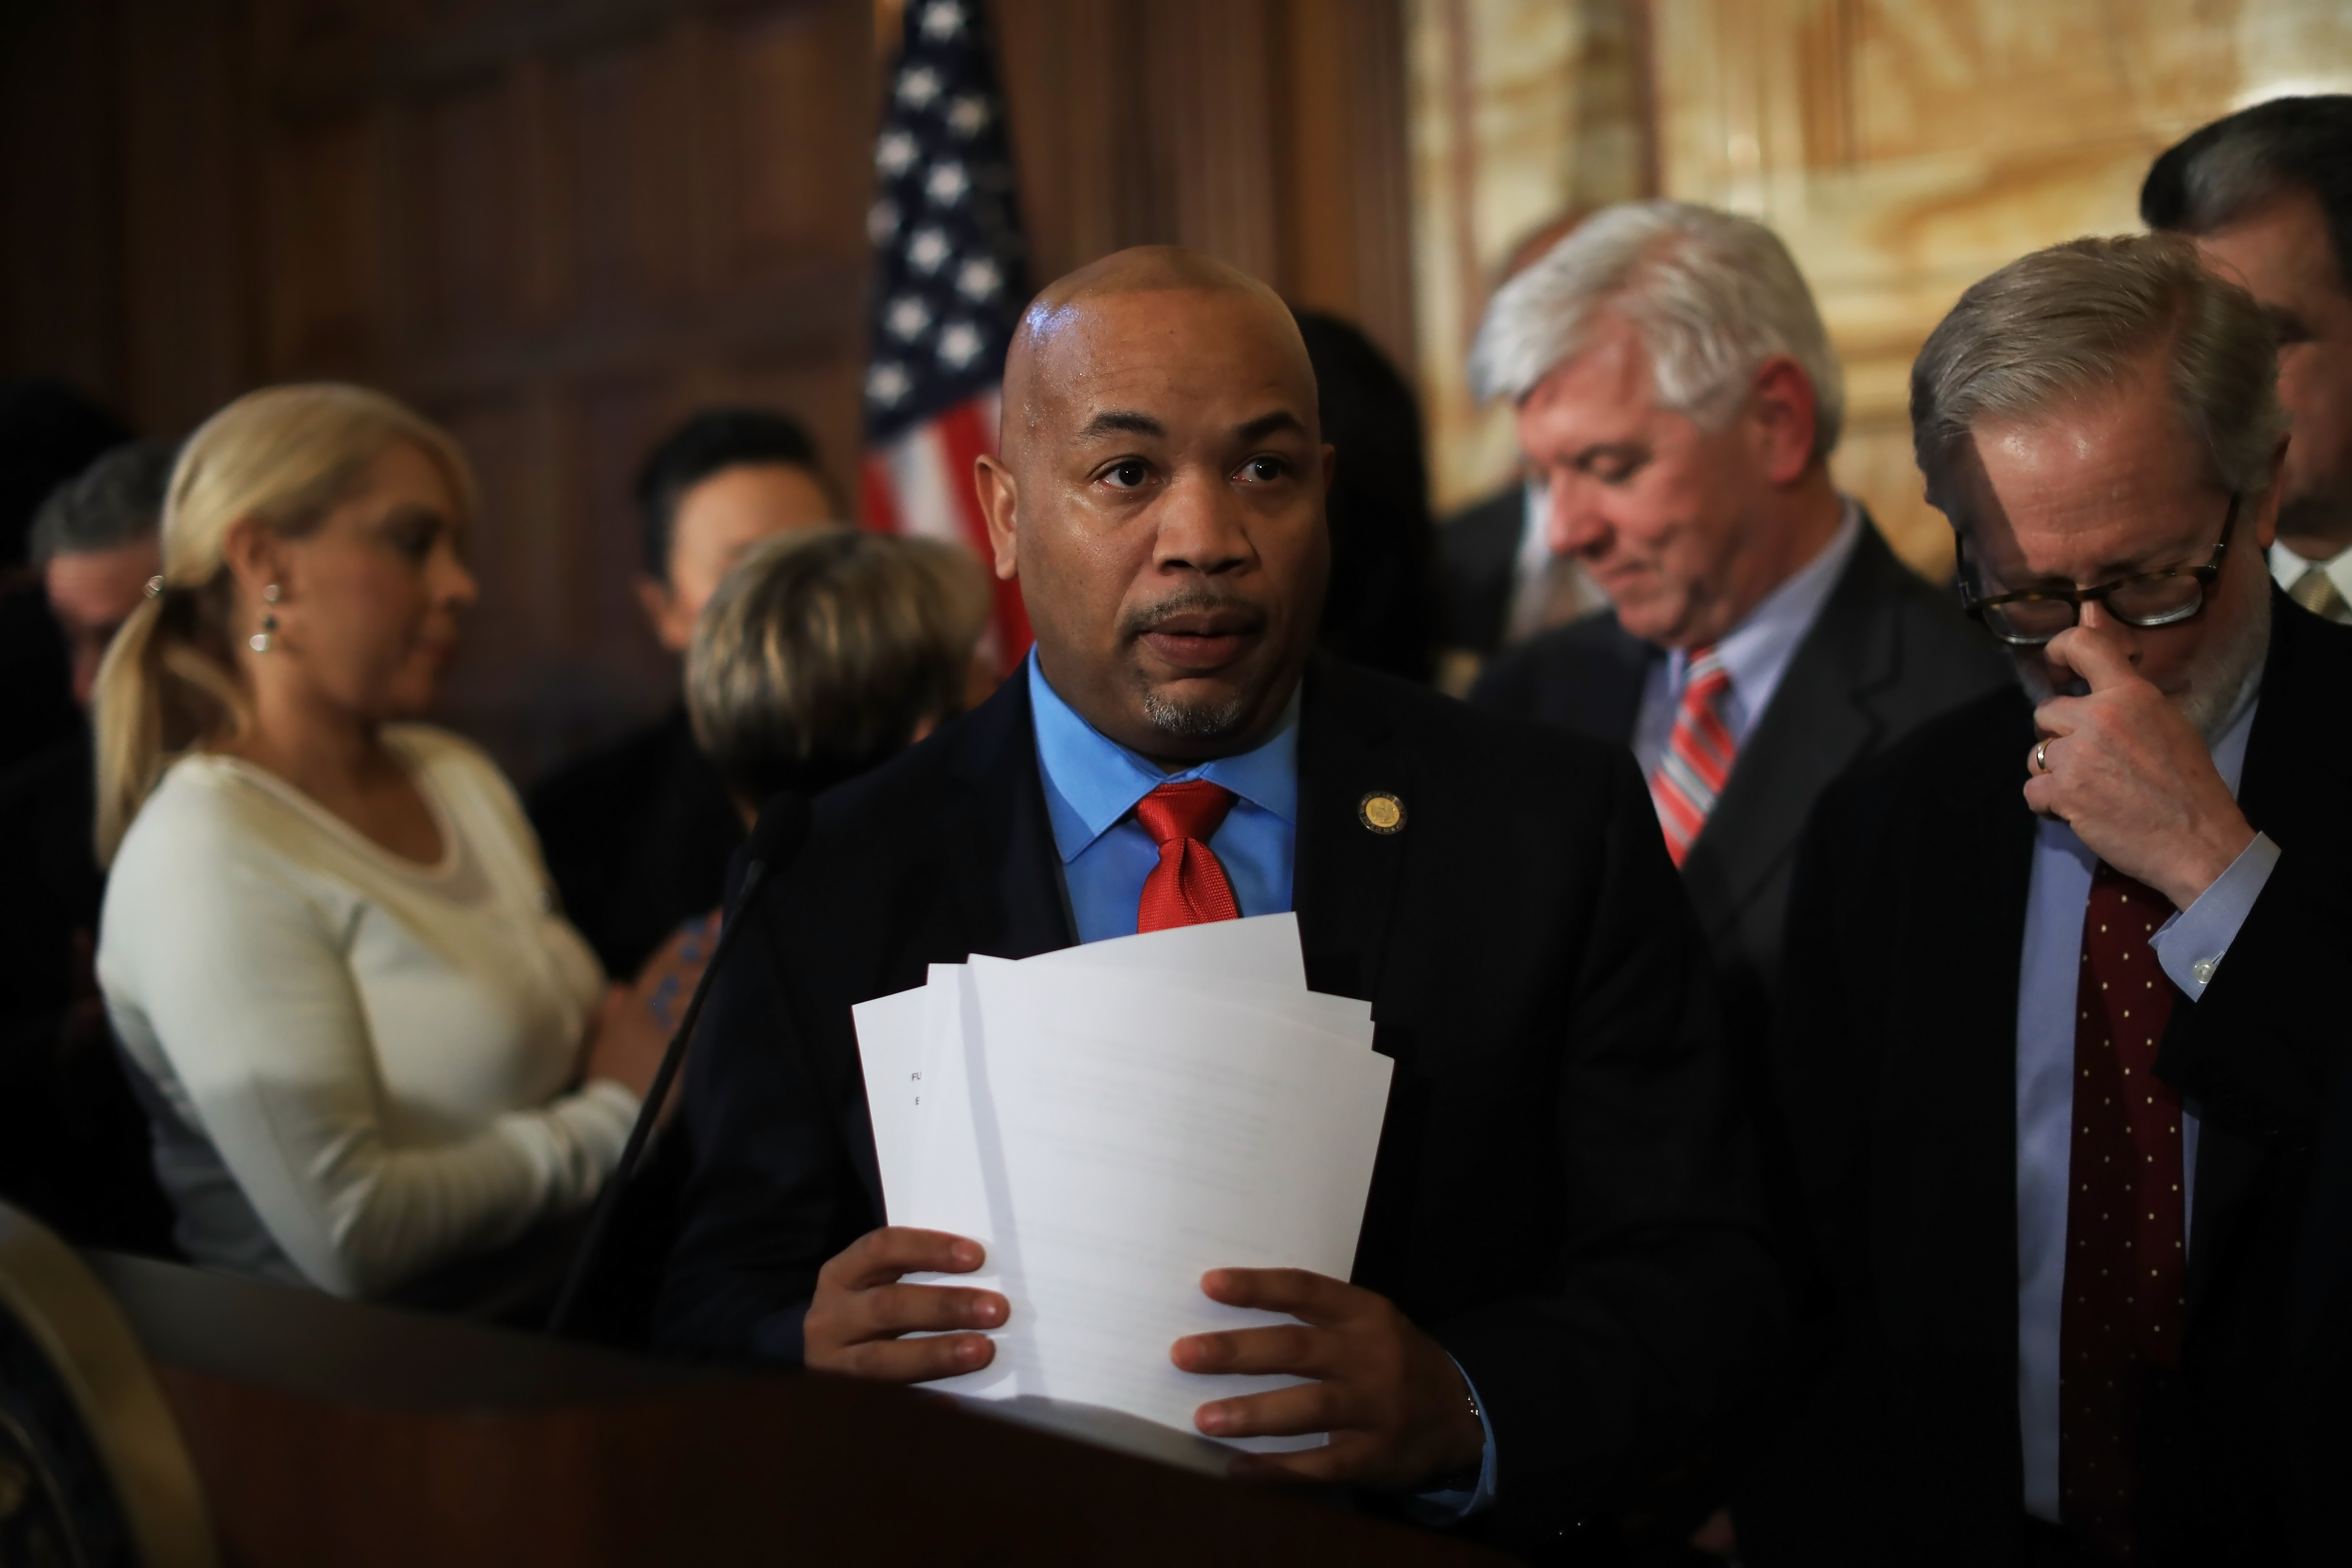 Assembly Speaker Carl Heastie speaks at a news conference about the Gov. Andrew CuomoÕs budget proposals, in Albany, N.Y., Jan. 17, 2017. (Nathaniel Brooks/The New York Times)